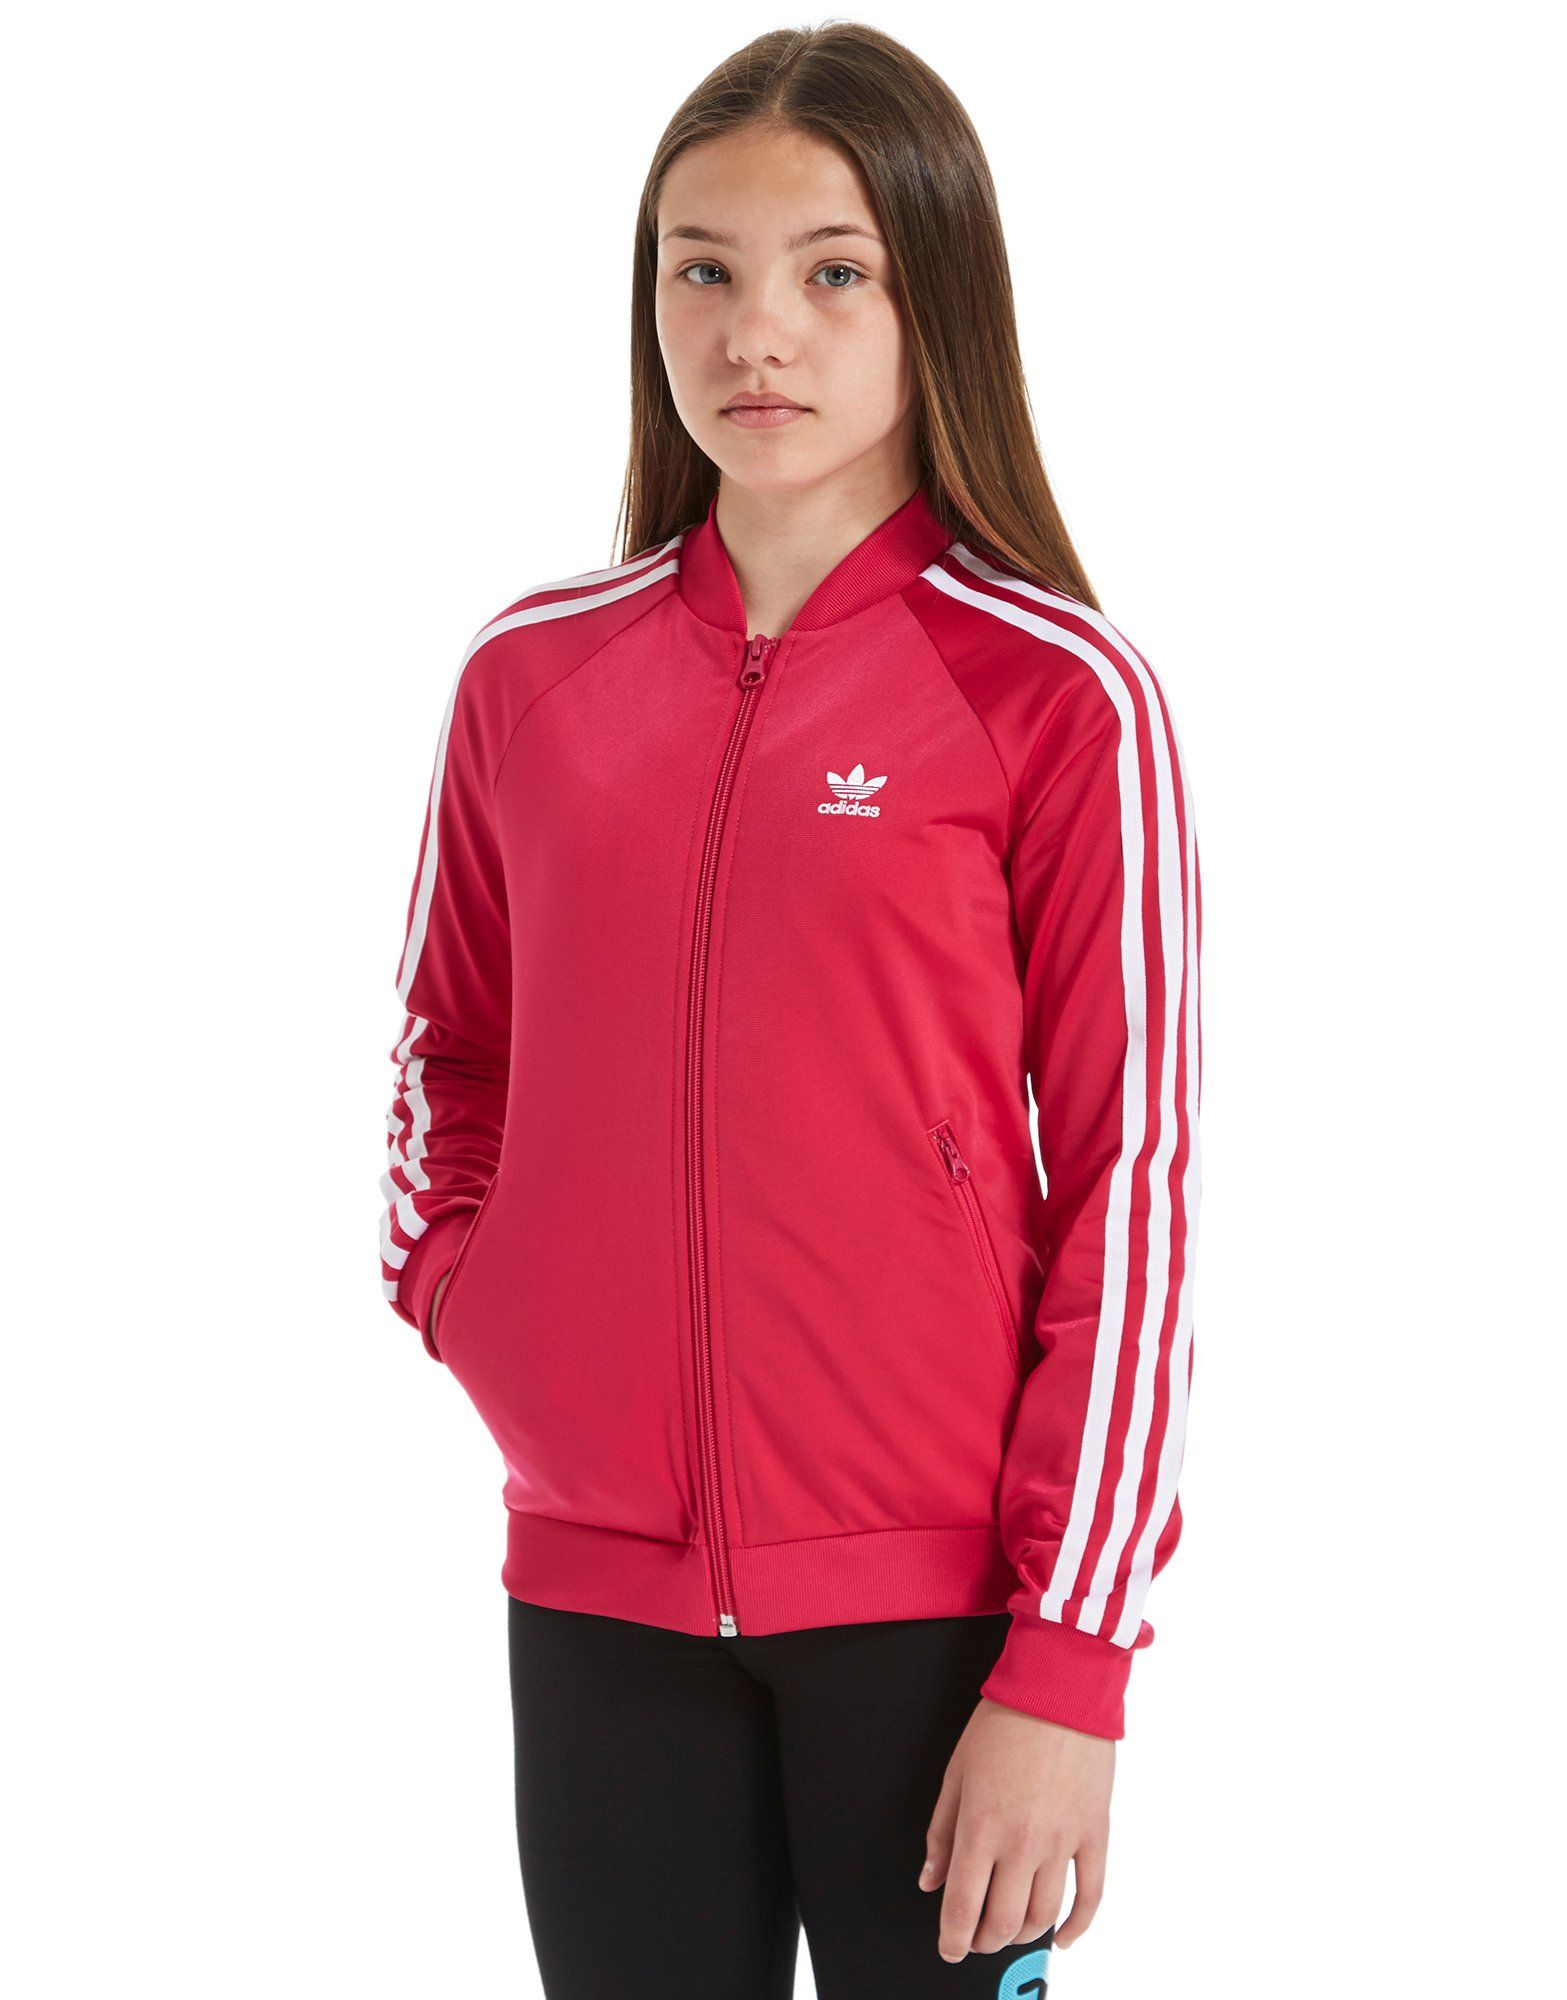 bd2906cd6c87 Adidas Jackets For Girls thehampsteadfactory.co.uk